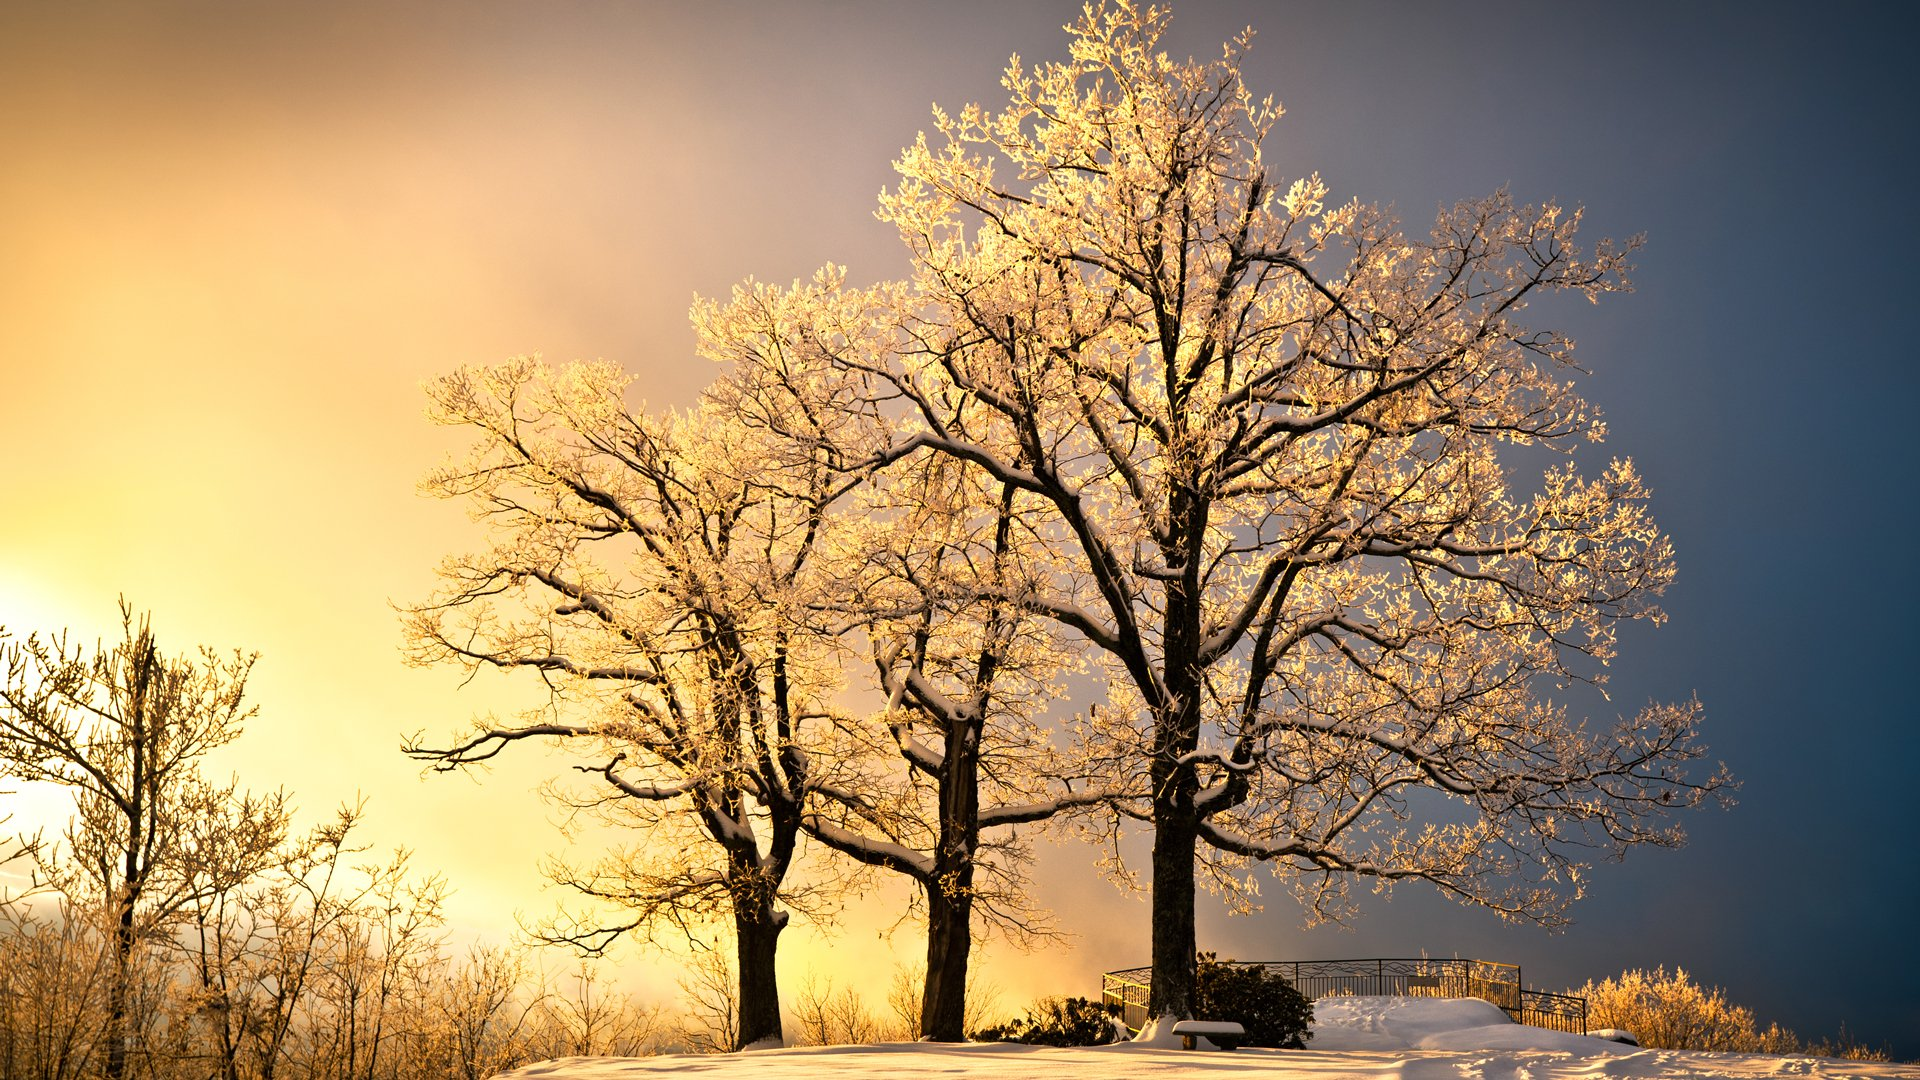 Trees in winter with sun behind